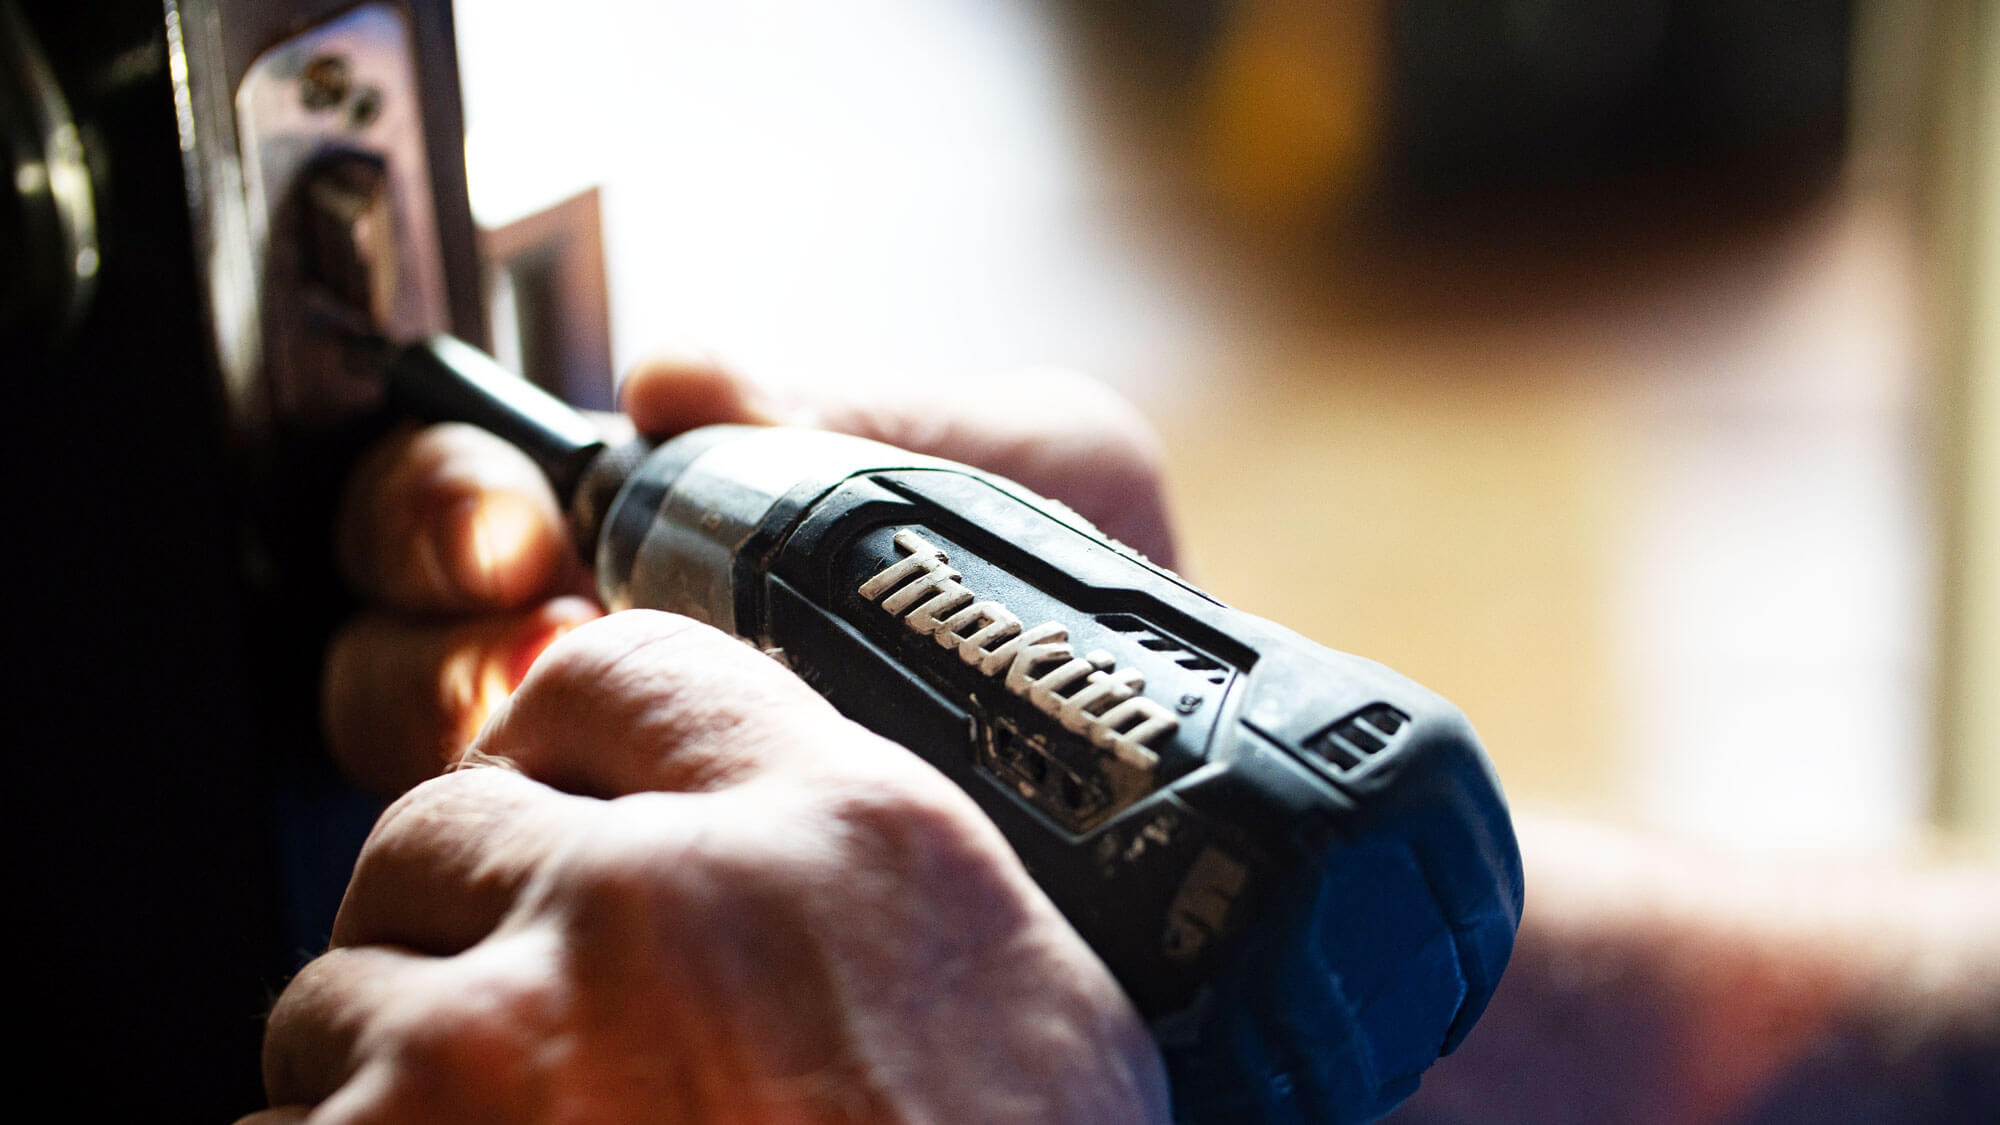 Professional tools are super helpful, but don't make everyone into pros